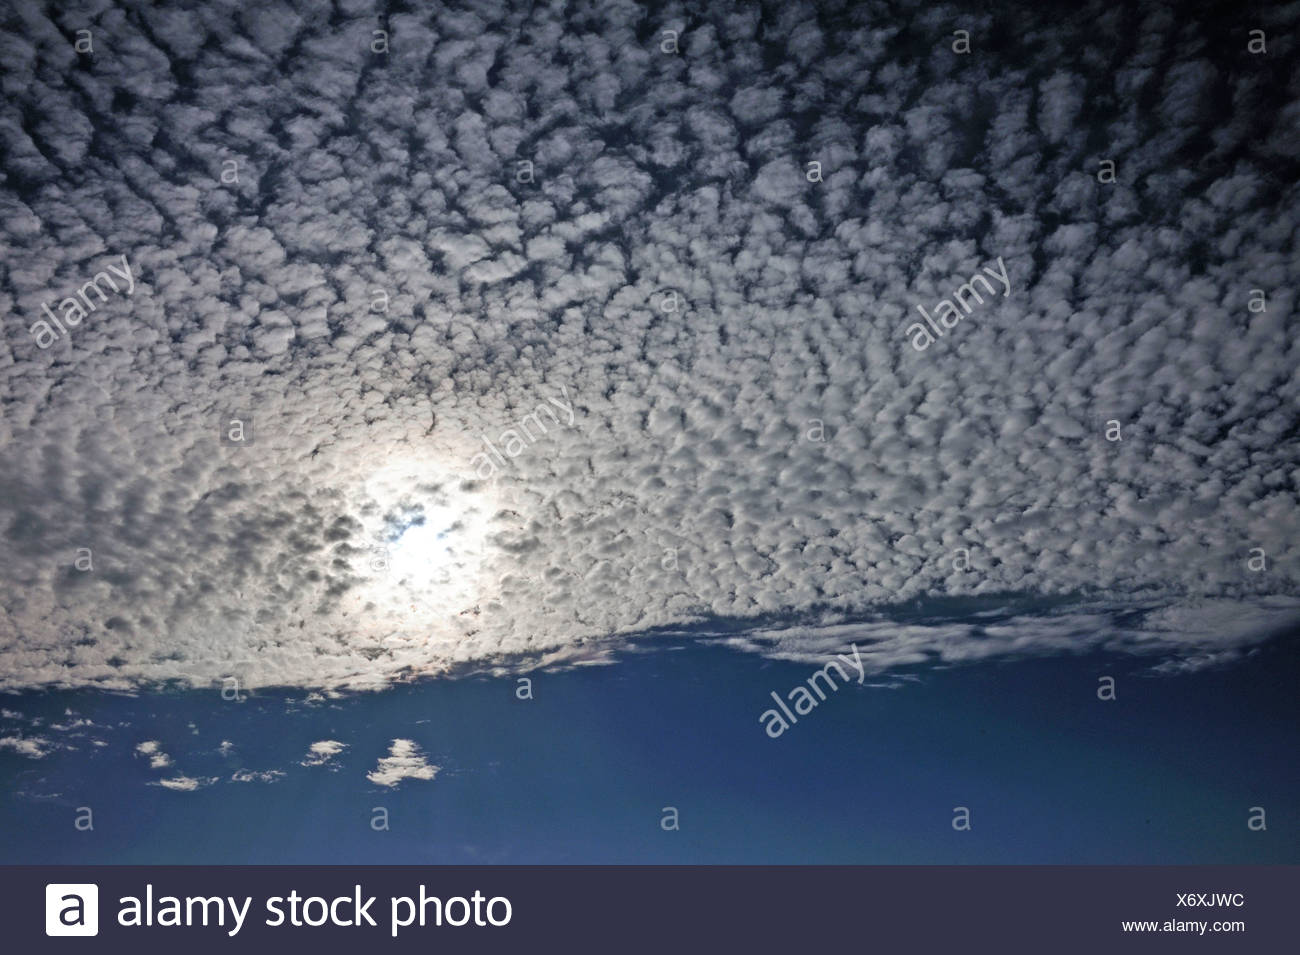 Fluffy clouds or cirrocumulus clouds, with the sun, Bentin, Rögnitz, Mecklenburg-Western Pomerania, Germany - Stock Image